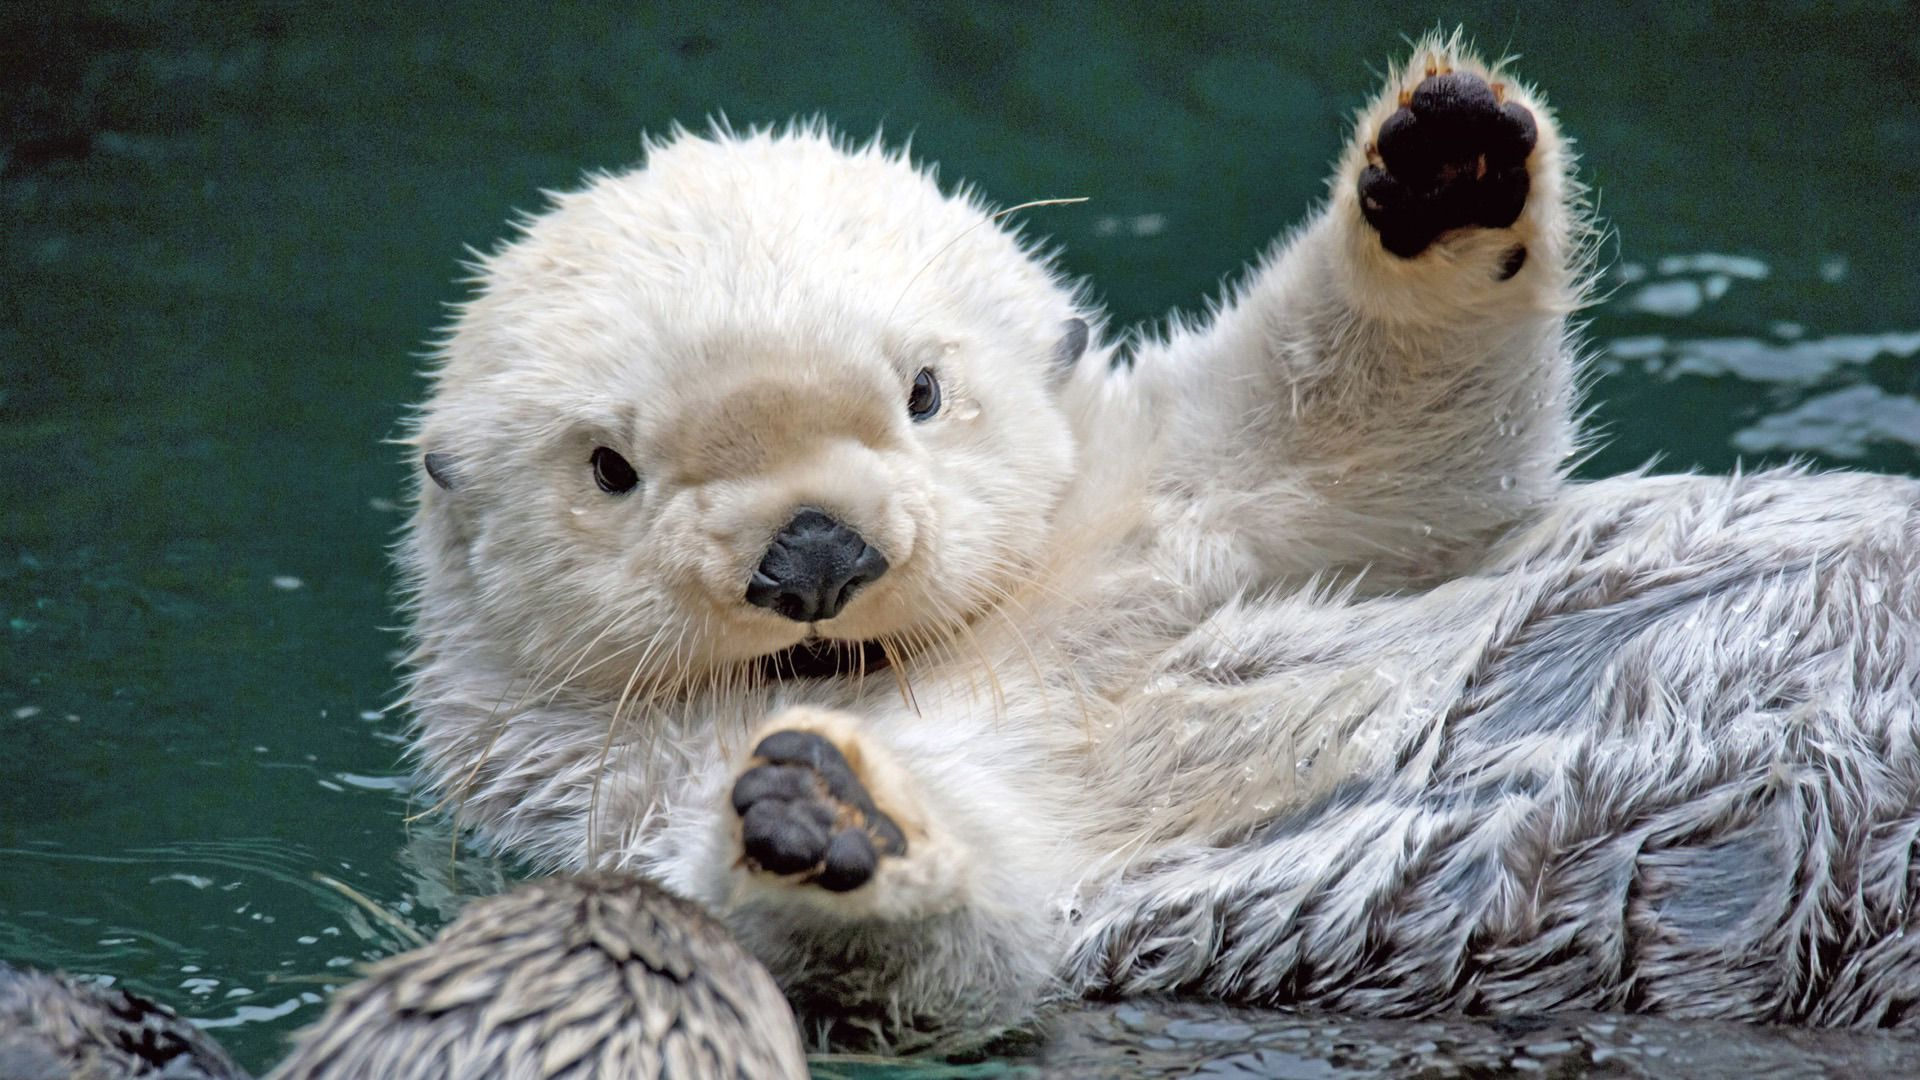 Sea Otter HD Wallpaper | Sea Otter Pictures | Cool Wallpapers | A ...